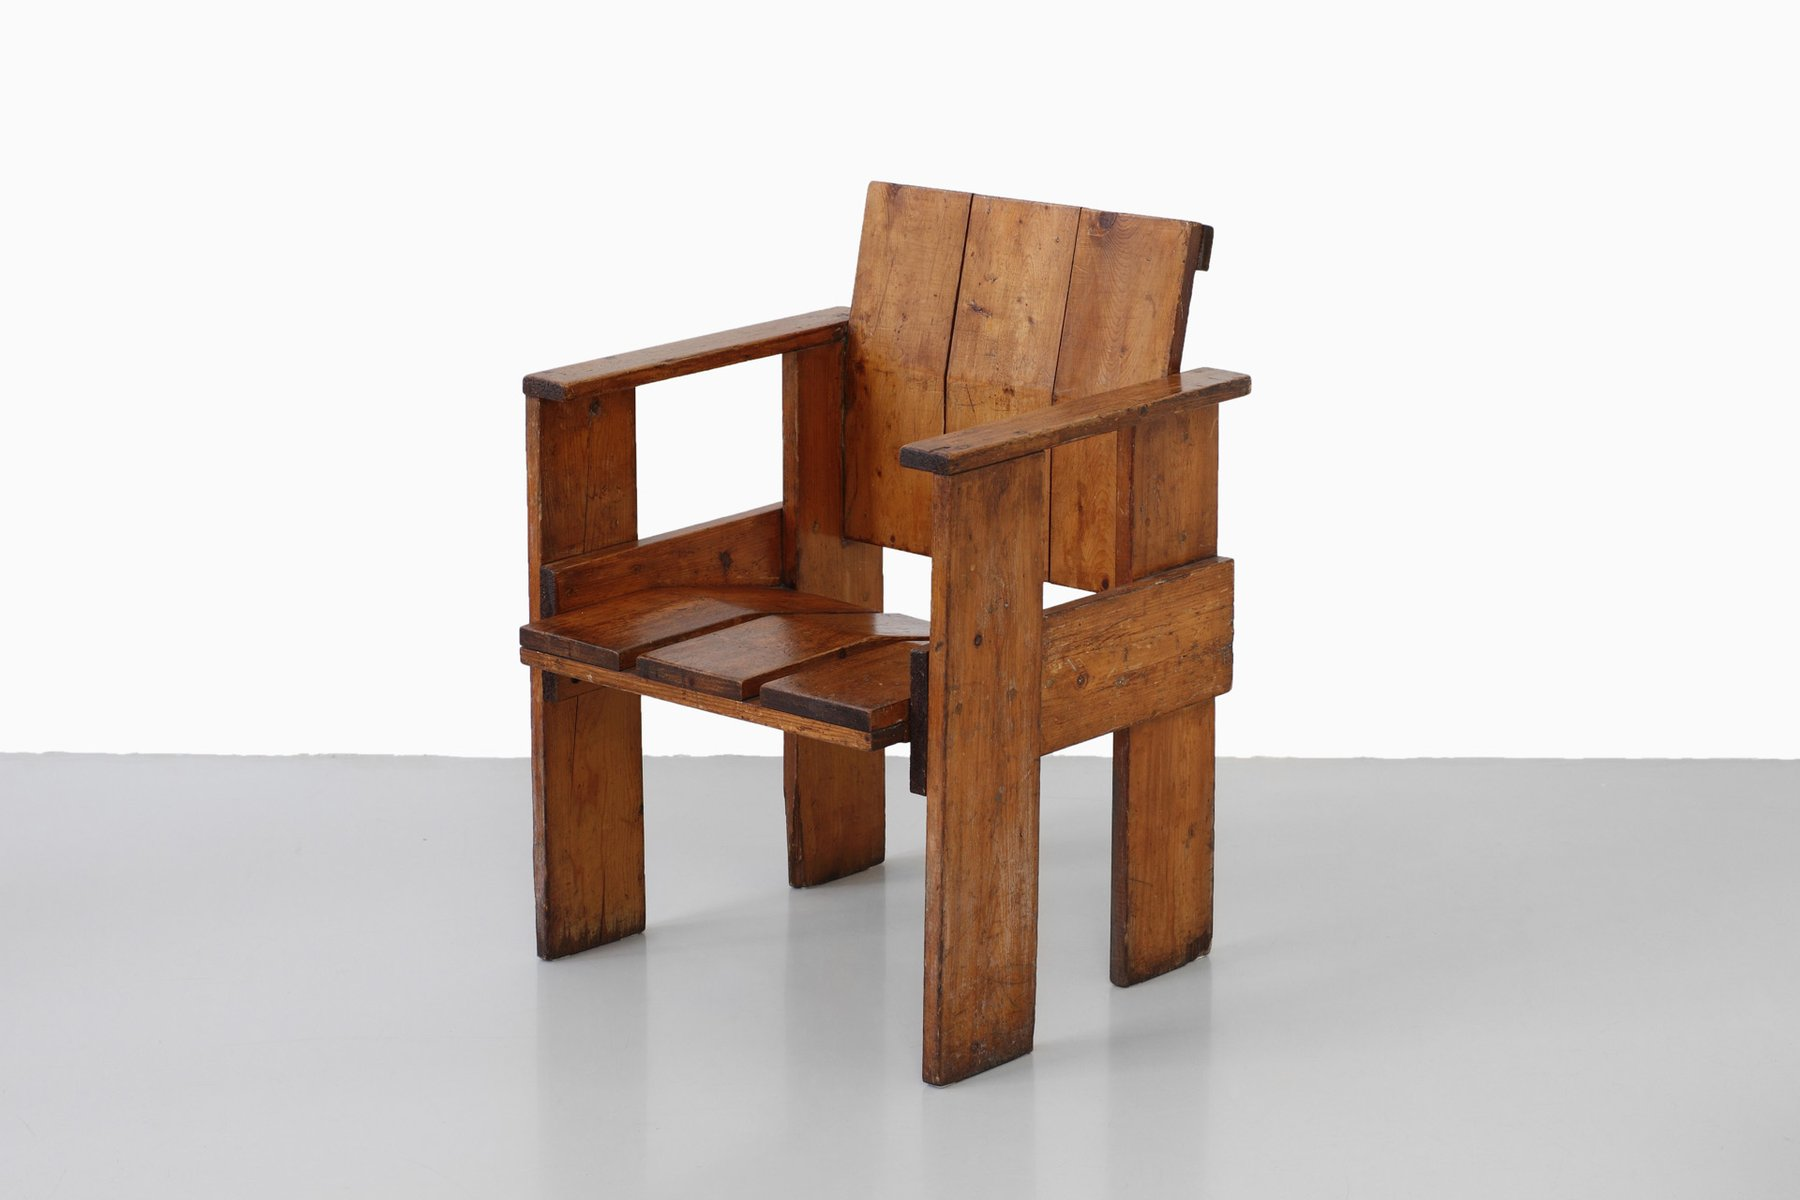 Gerrit rietveld chair for sale - Albatros Chair By Gerrit Rietveld 2 25 034 00 299 00 Insured Delivery